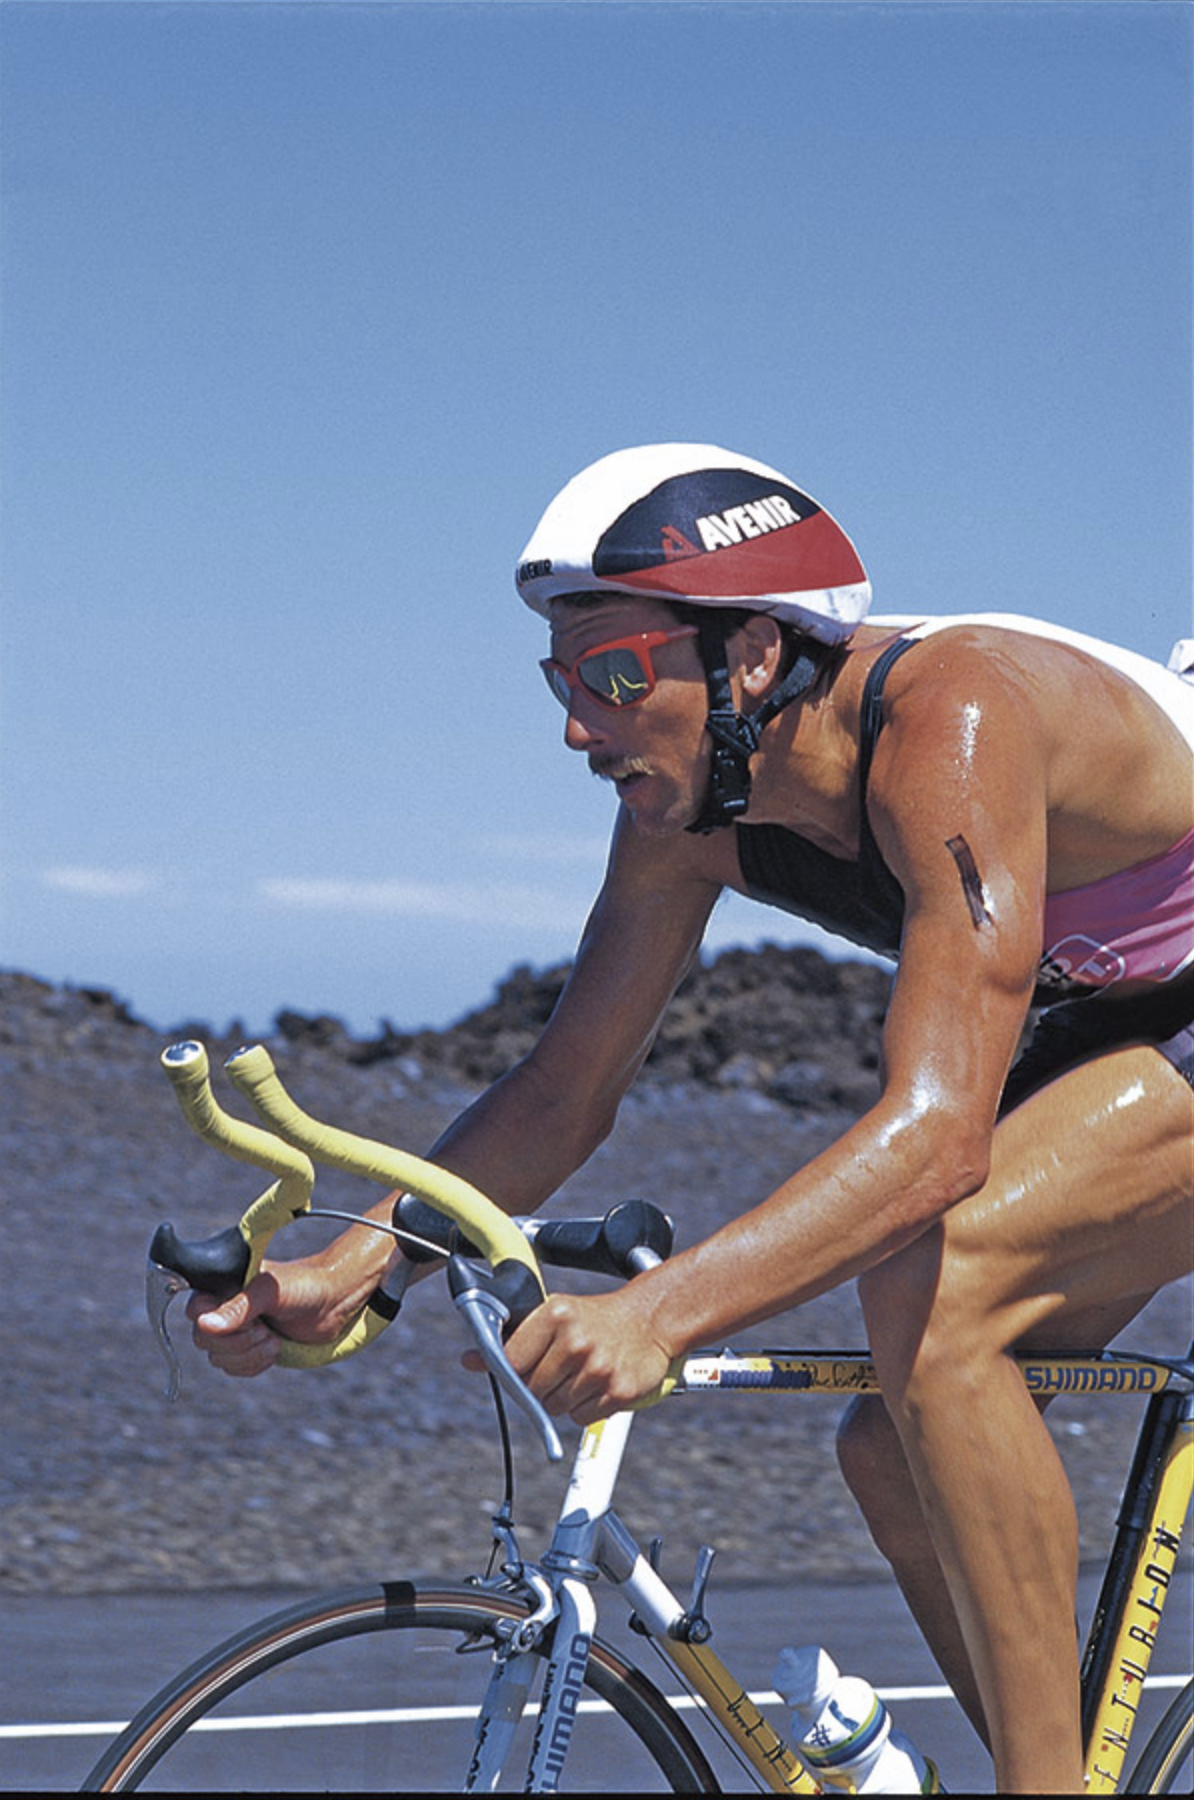 Dave Scott biking in the 1987 IRONMAN®  PHOTO: davescottinc.com